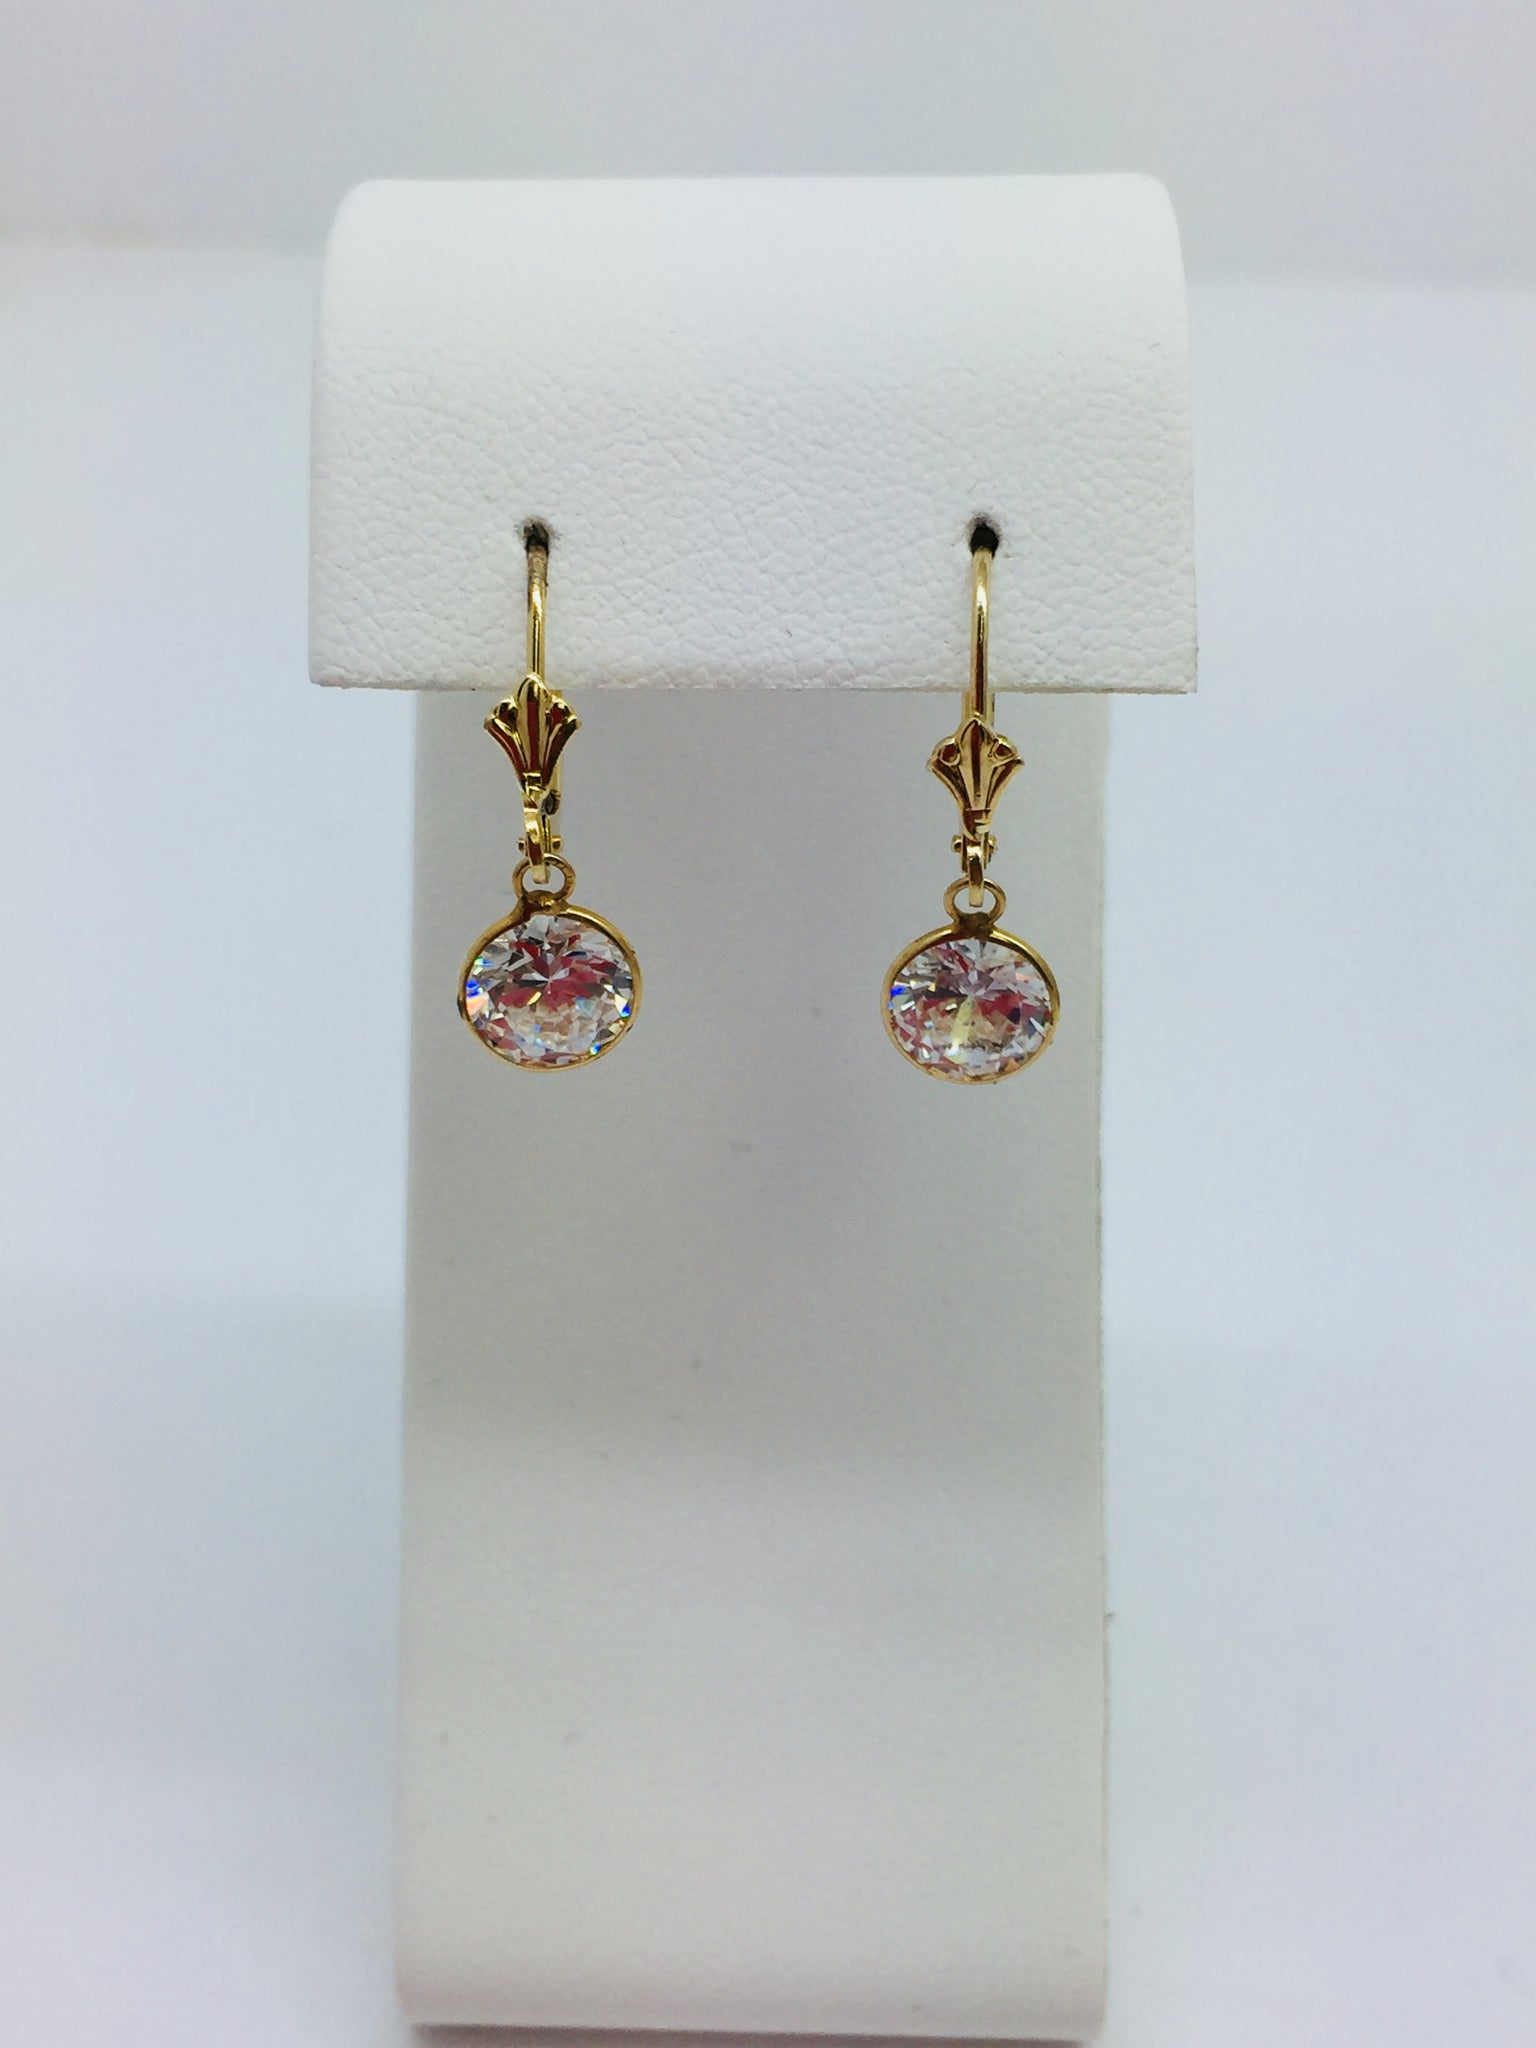 14k Solid Yellow Gold Cubic Zirconia Round Leverback Dangle Earrings